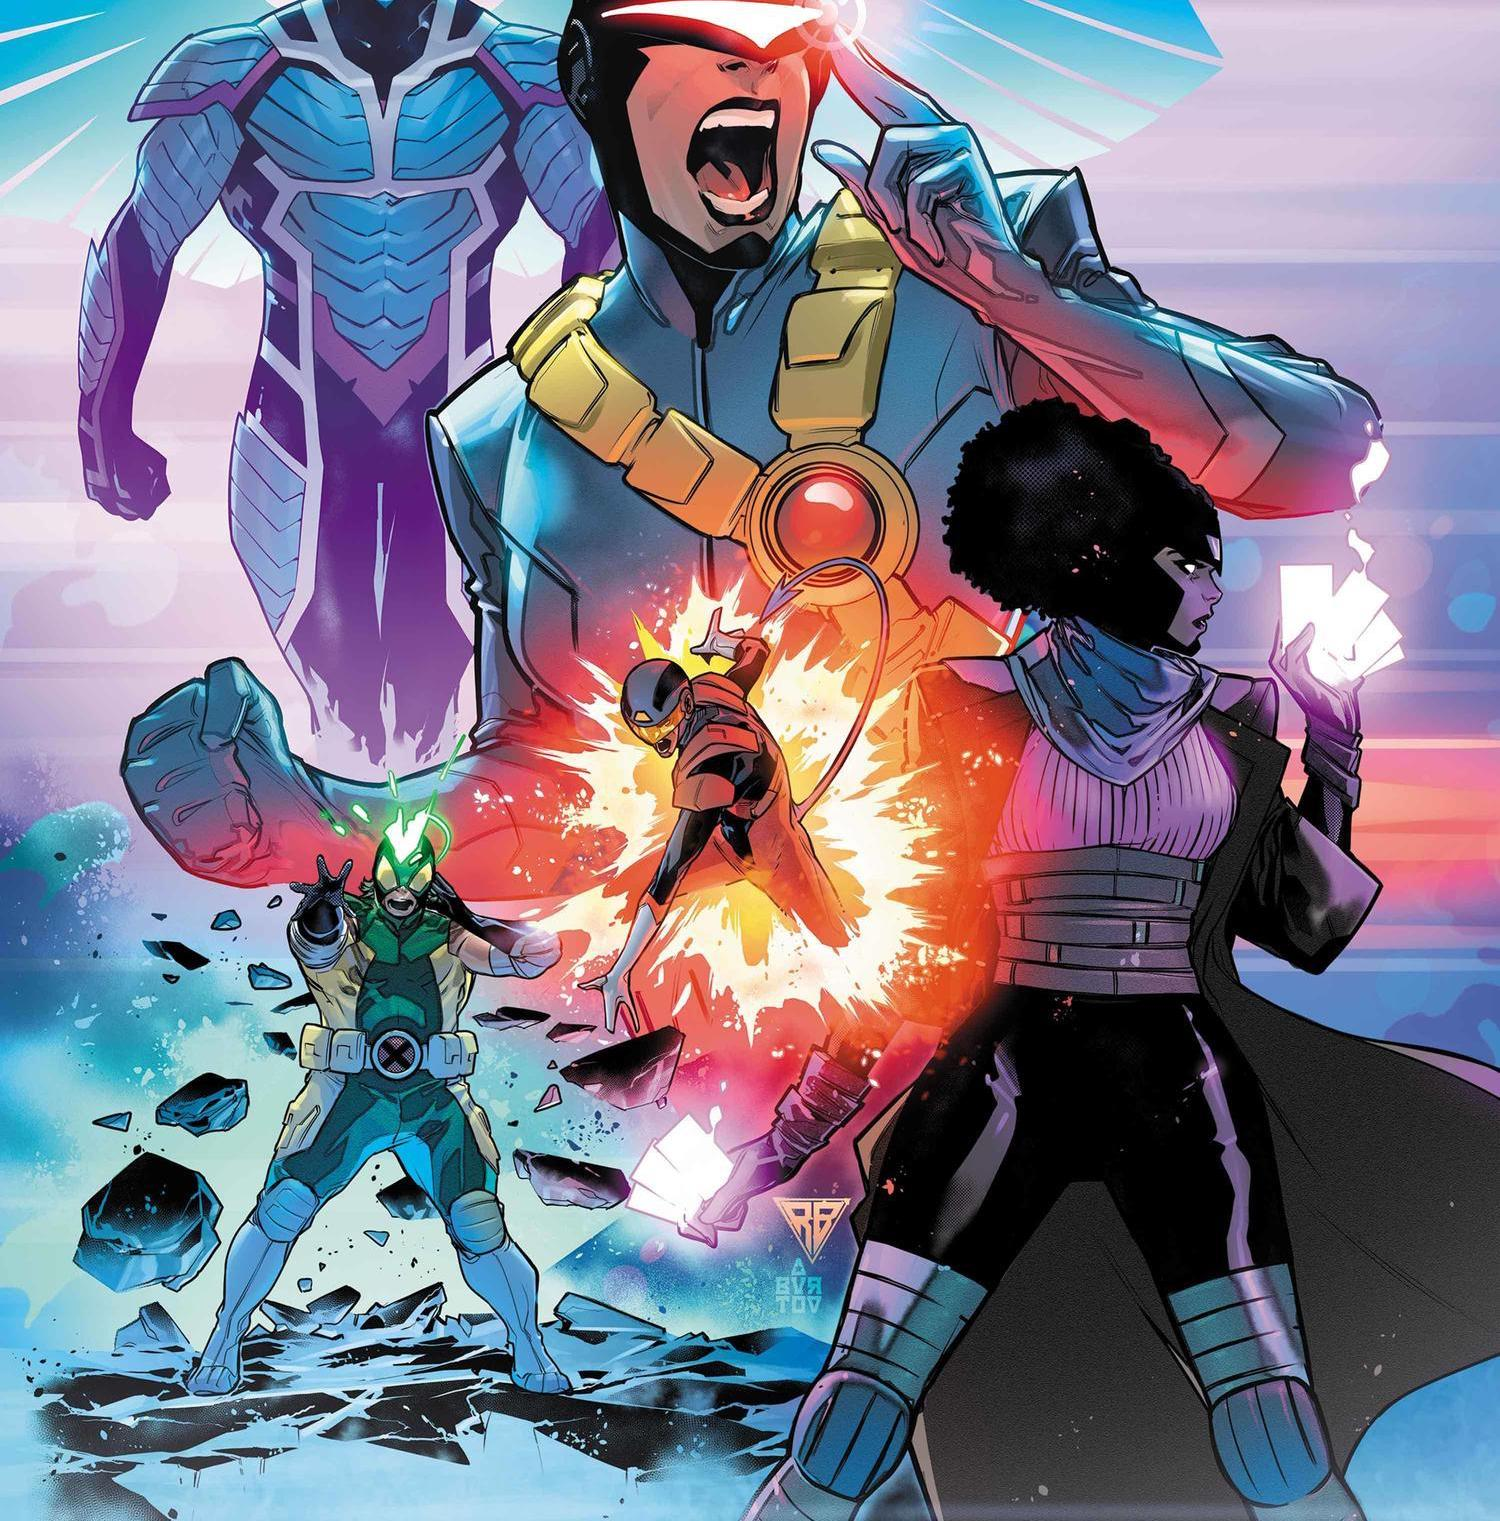 Marvel reveals 'Children of the Atom' to debut January 2021